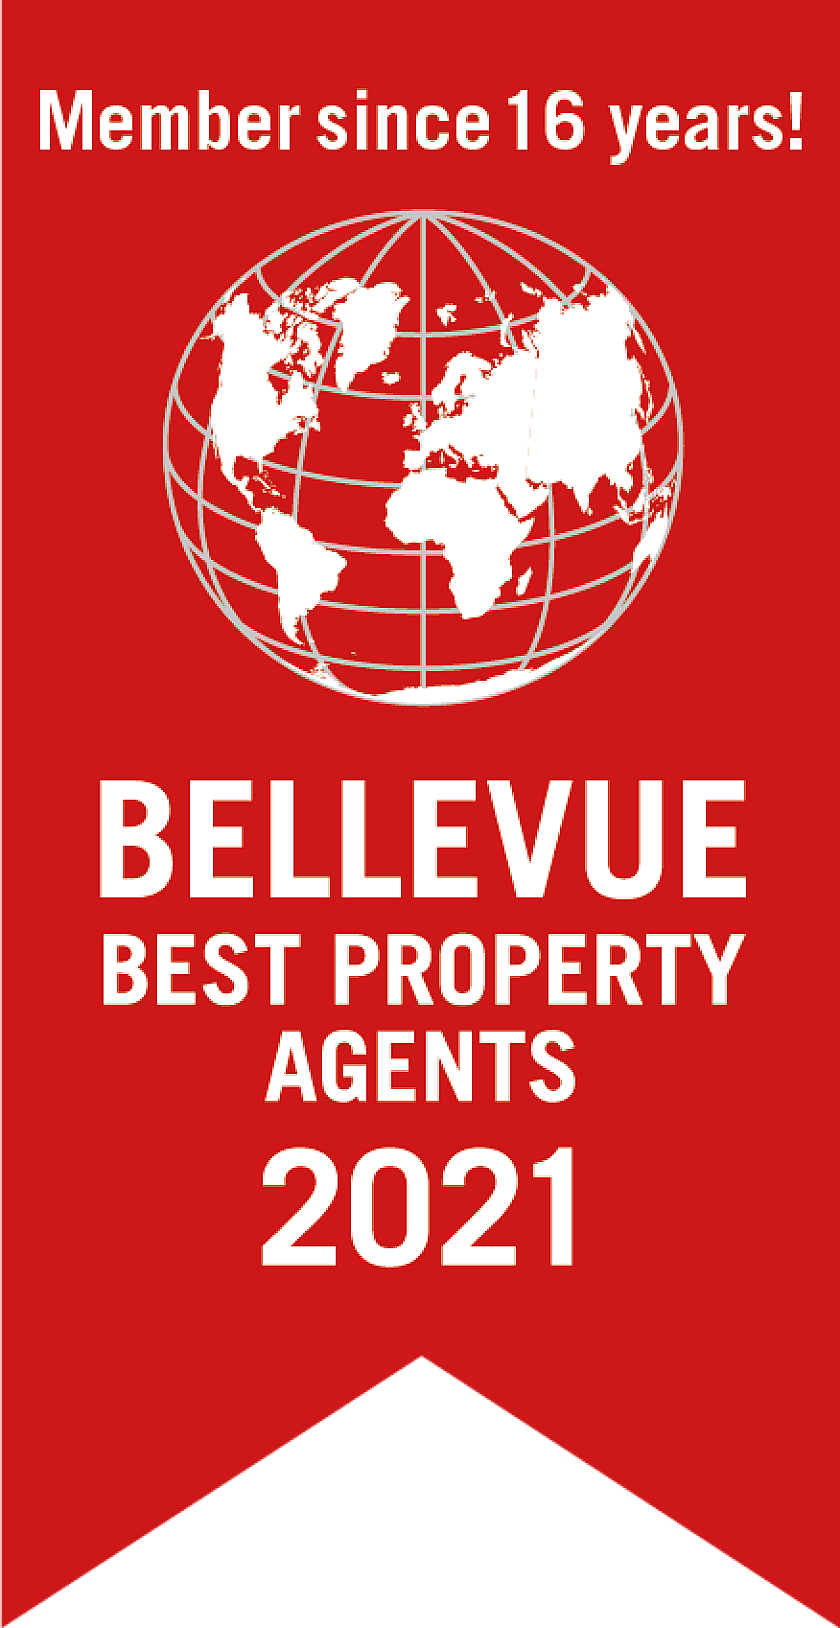 Best property agents